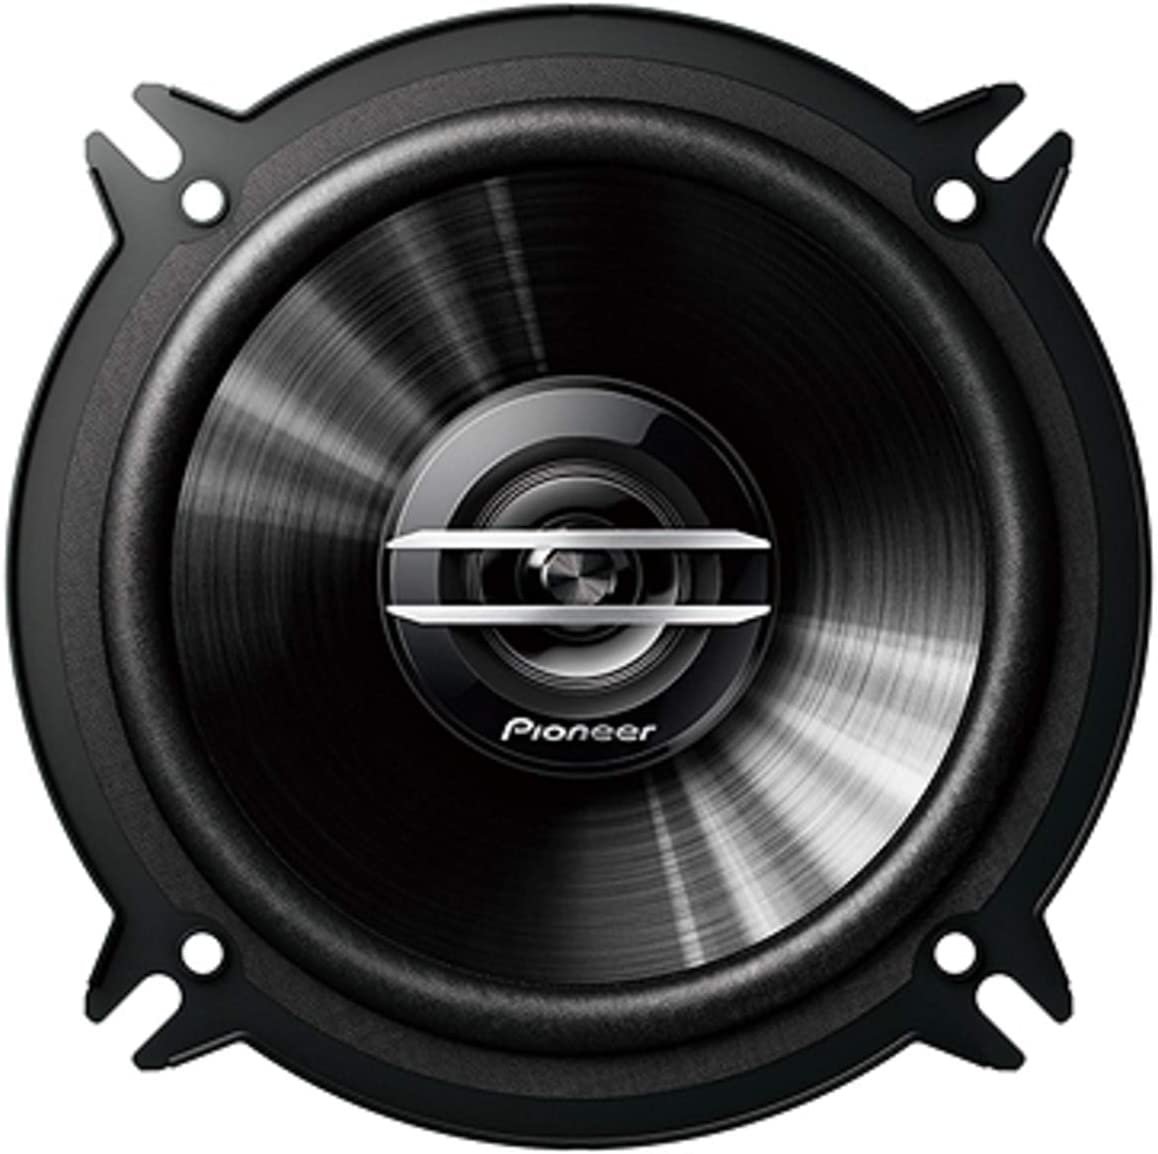 "Pioneer TS-G1320S 500 Watts Max Power 5-1/4"" 3-Way G-Series Coaxial Full Range Car Audio Stereo Speakers"